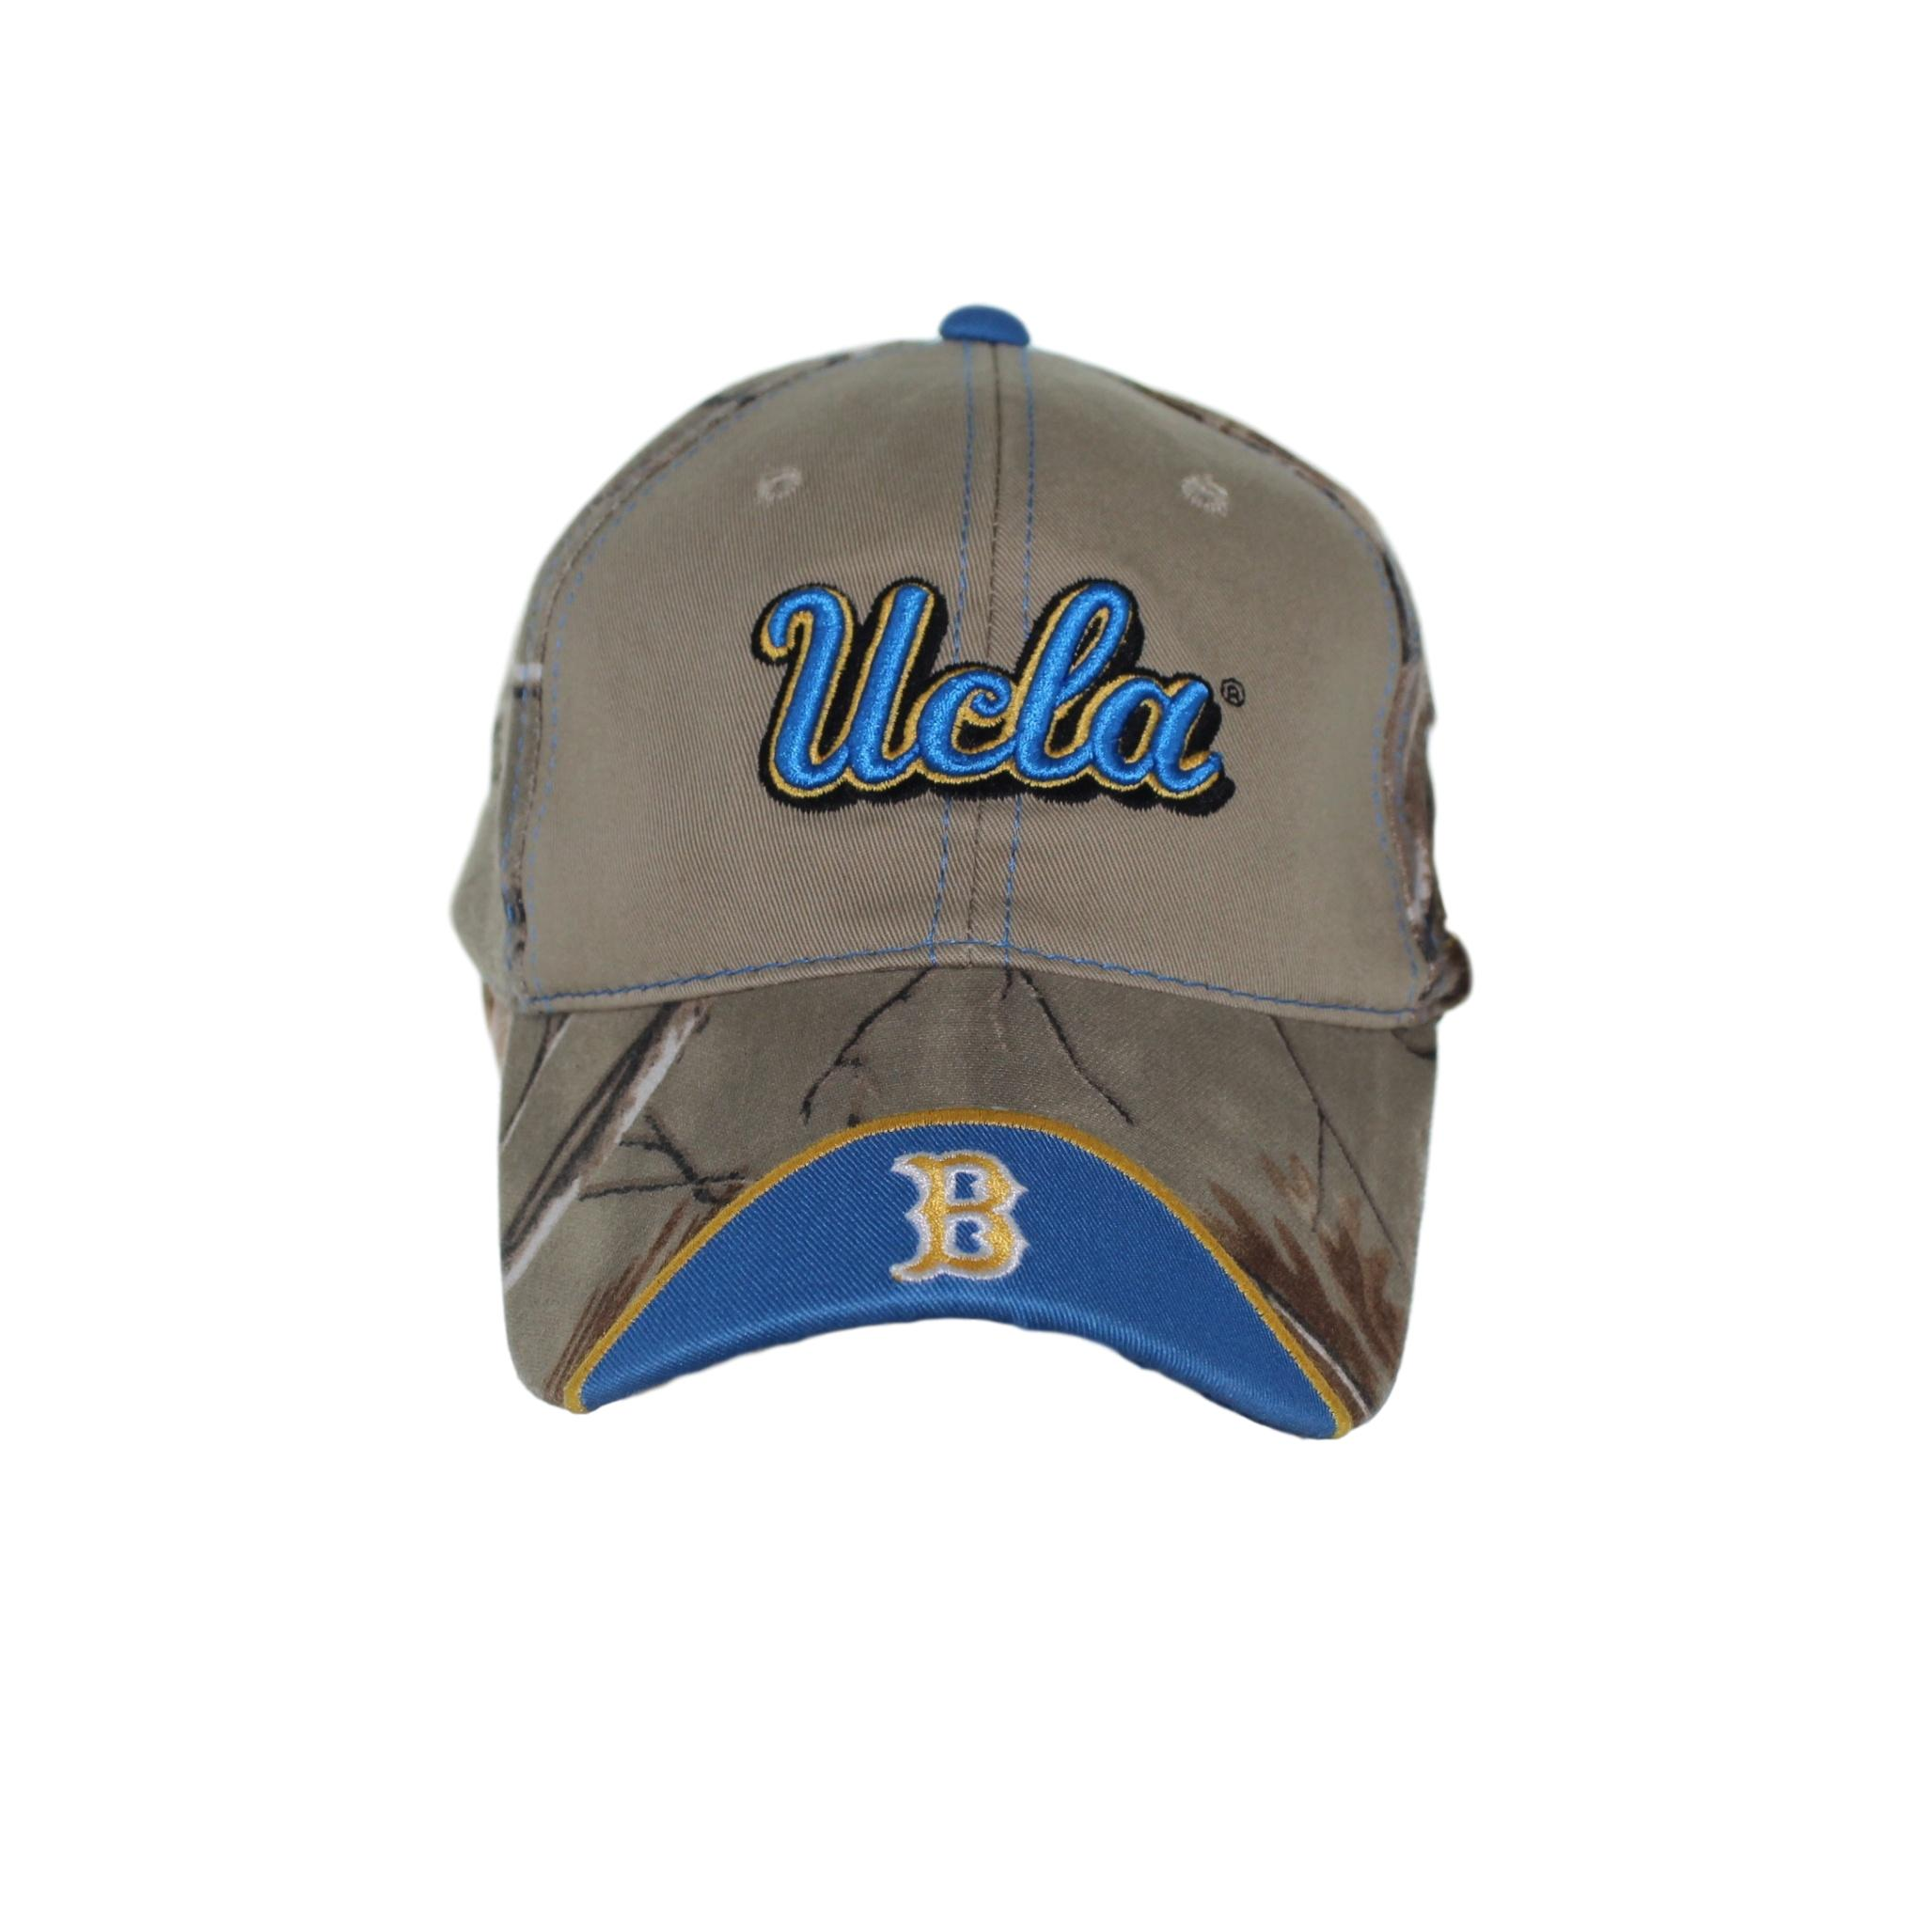 low priced f30c8 9212b ... where to buy ucla bruins blue ucla script on forest camo and khaki  buckle hat cap